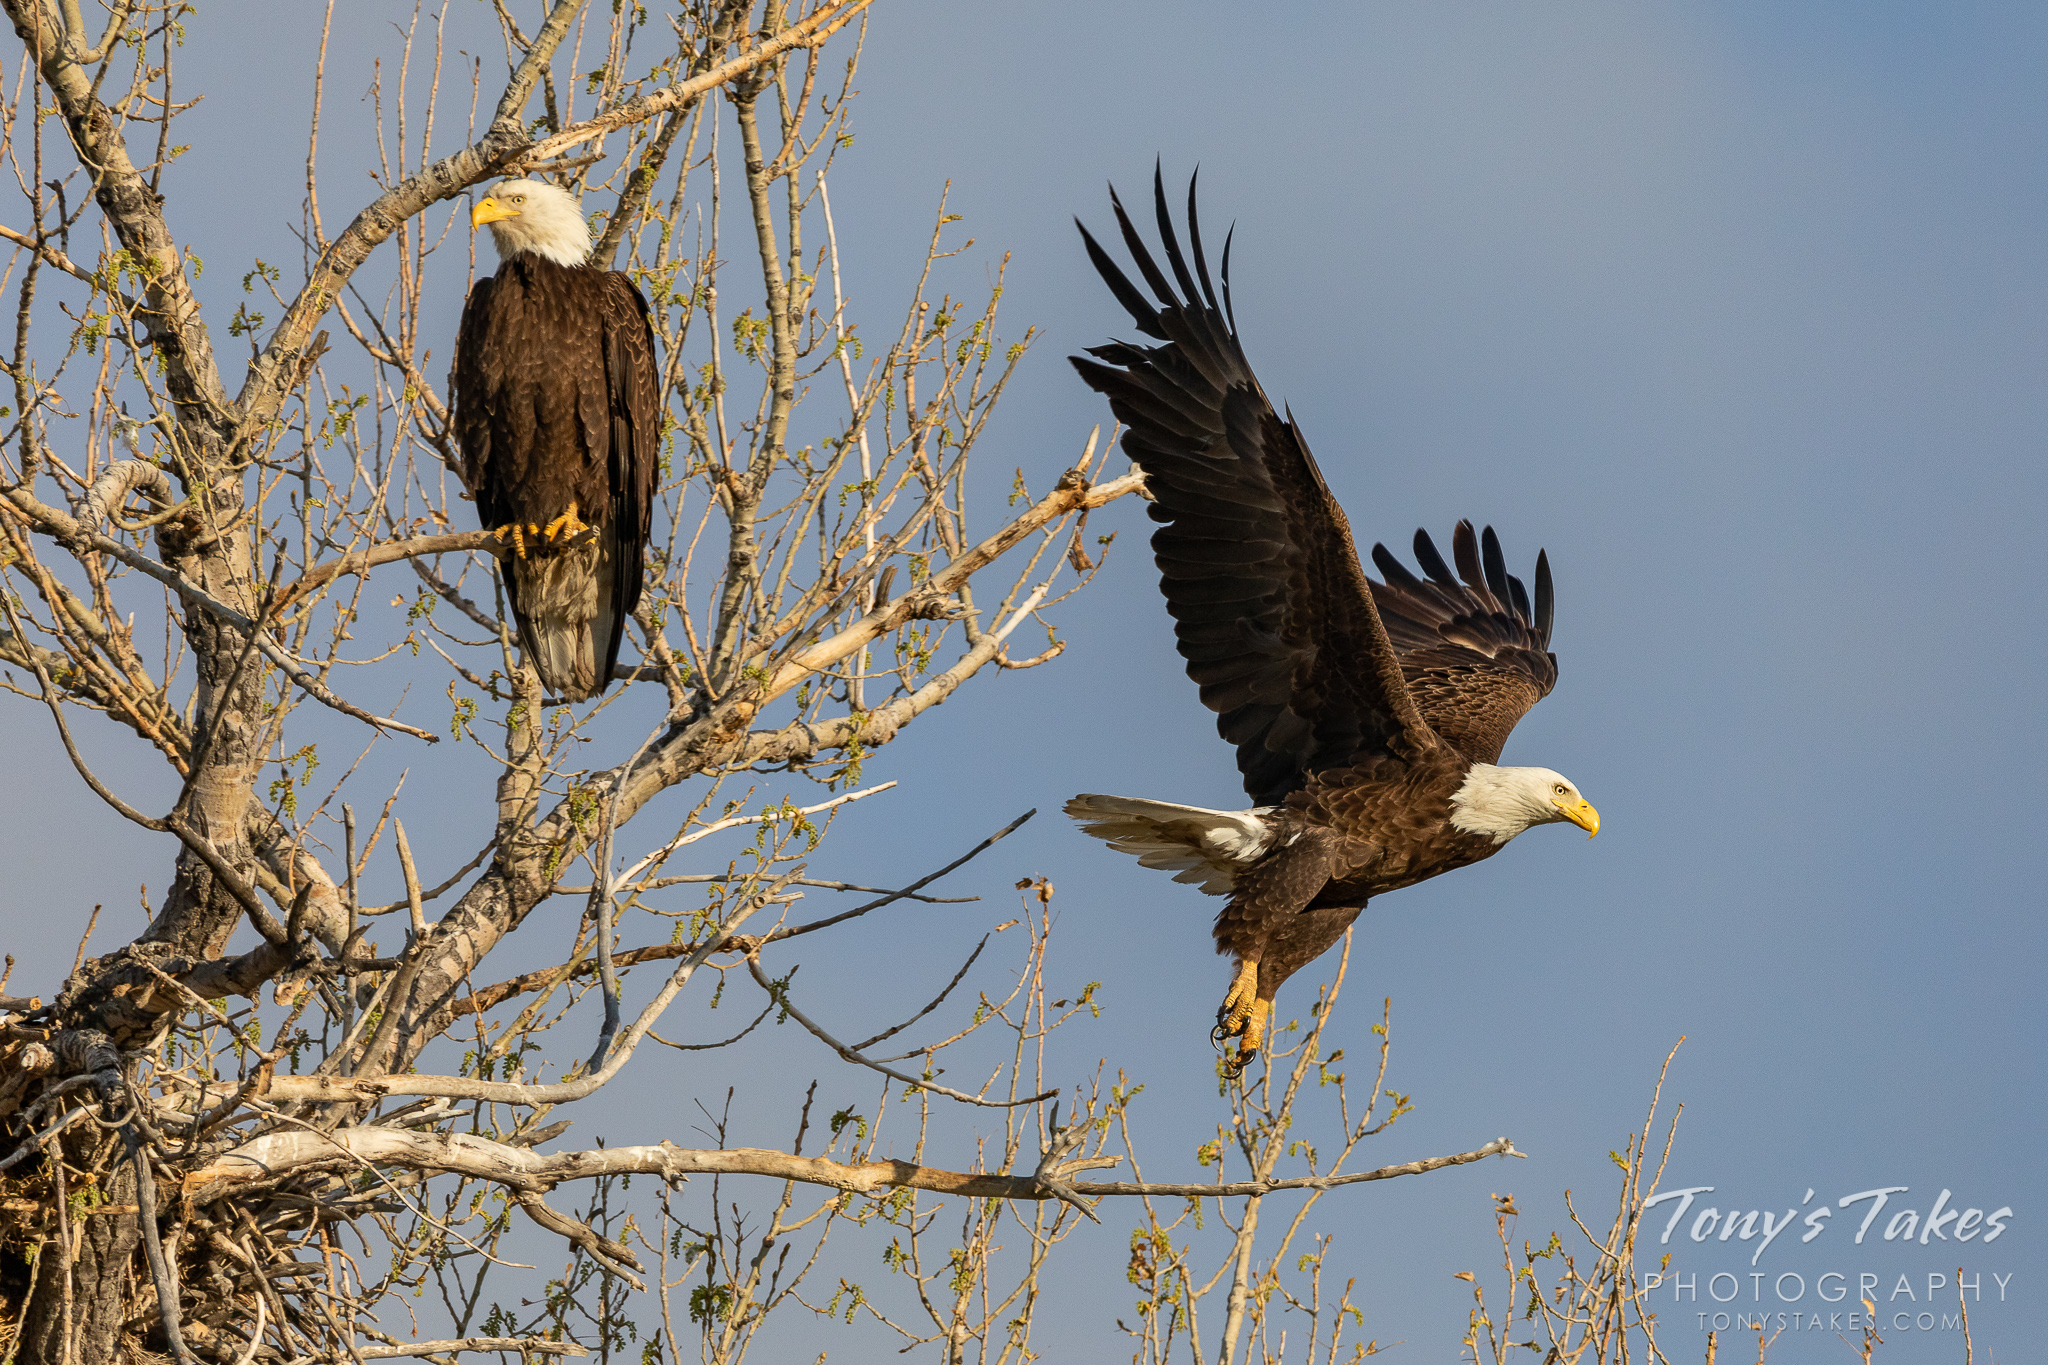 A male bald eagle departs its home while its mate keeps watch. (© Tony's Takes)